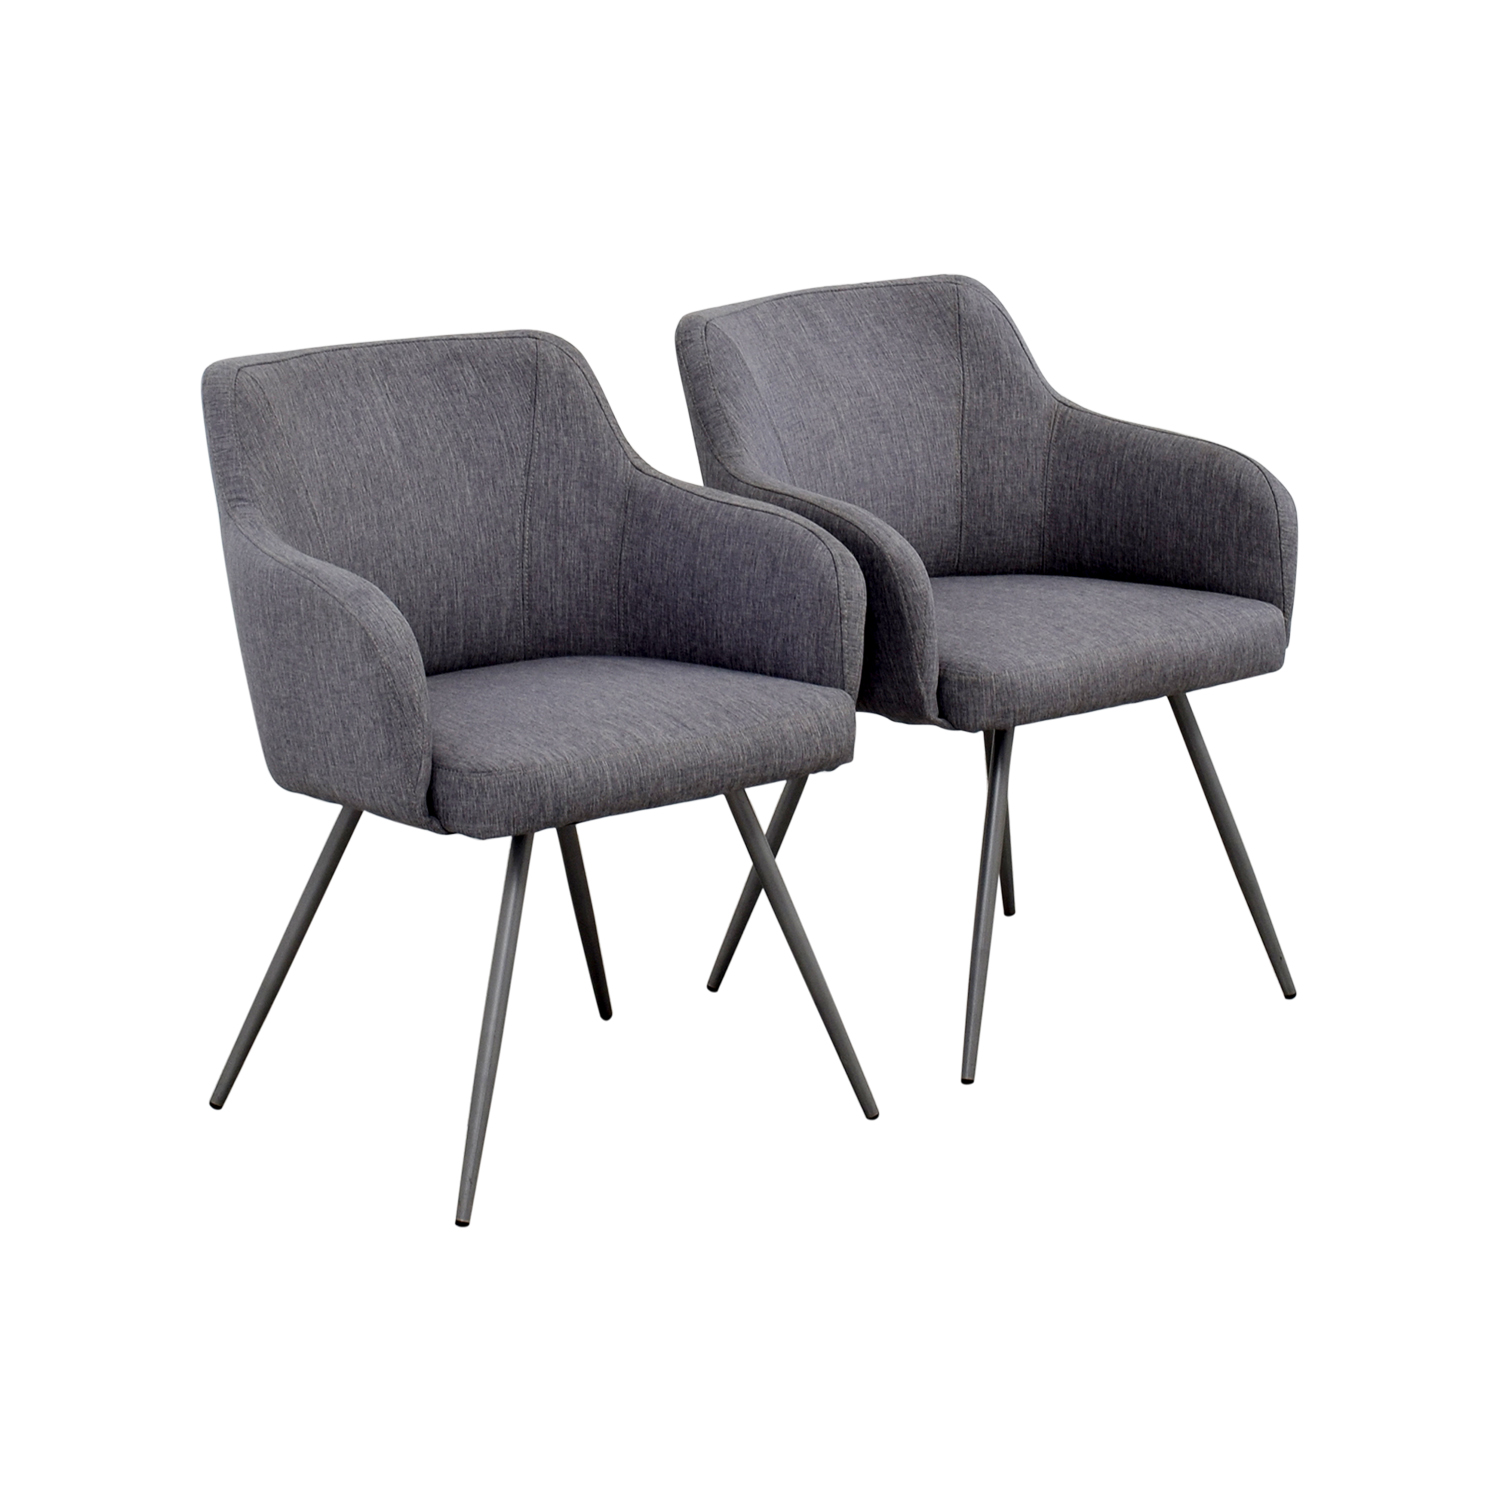 ... AllModern AllModern Mid Century Grey Upholstered Dining Chairs Chairs  ...